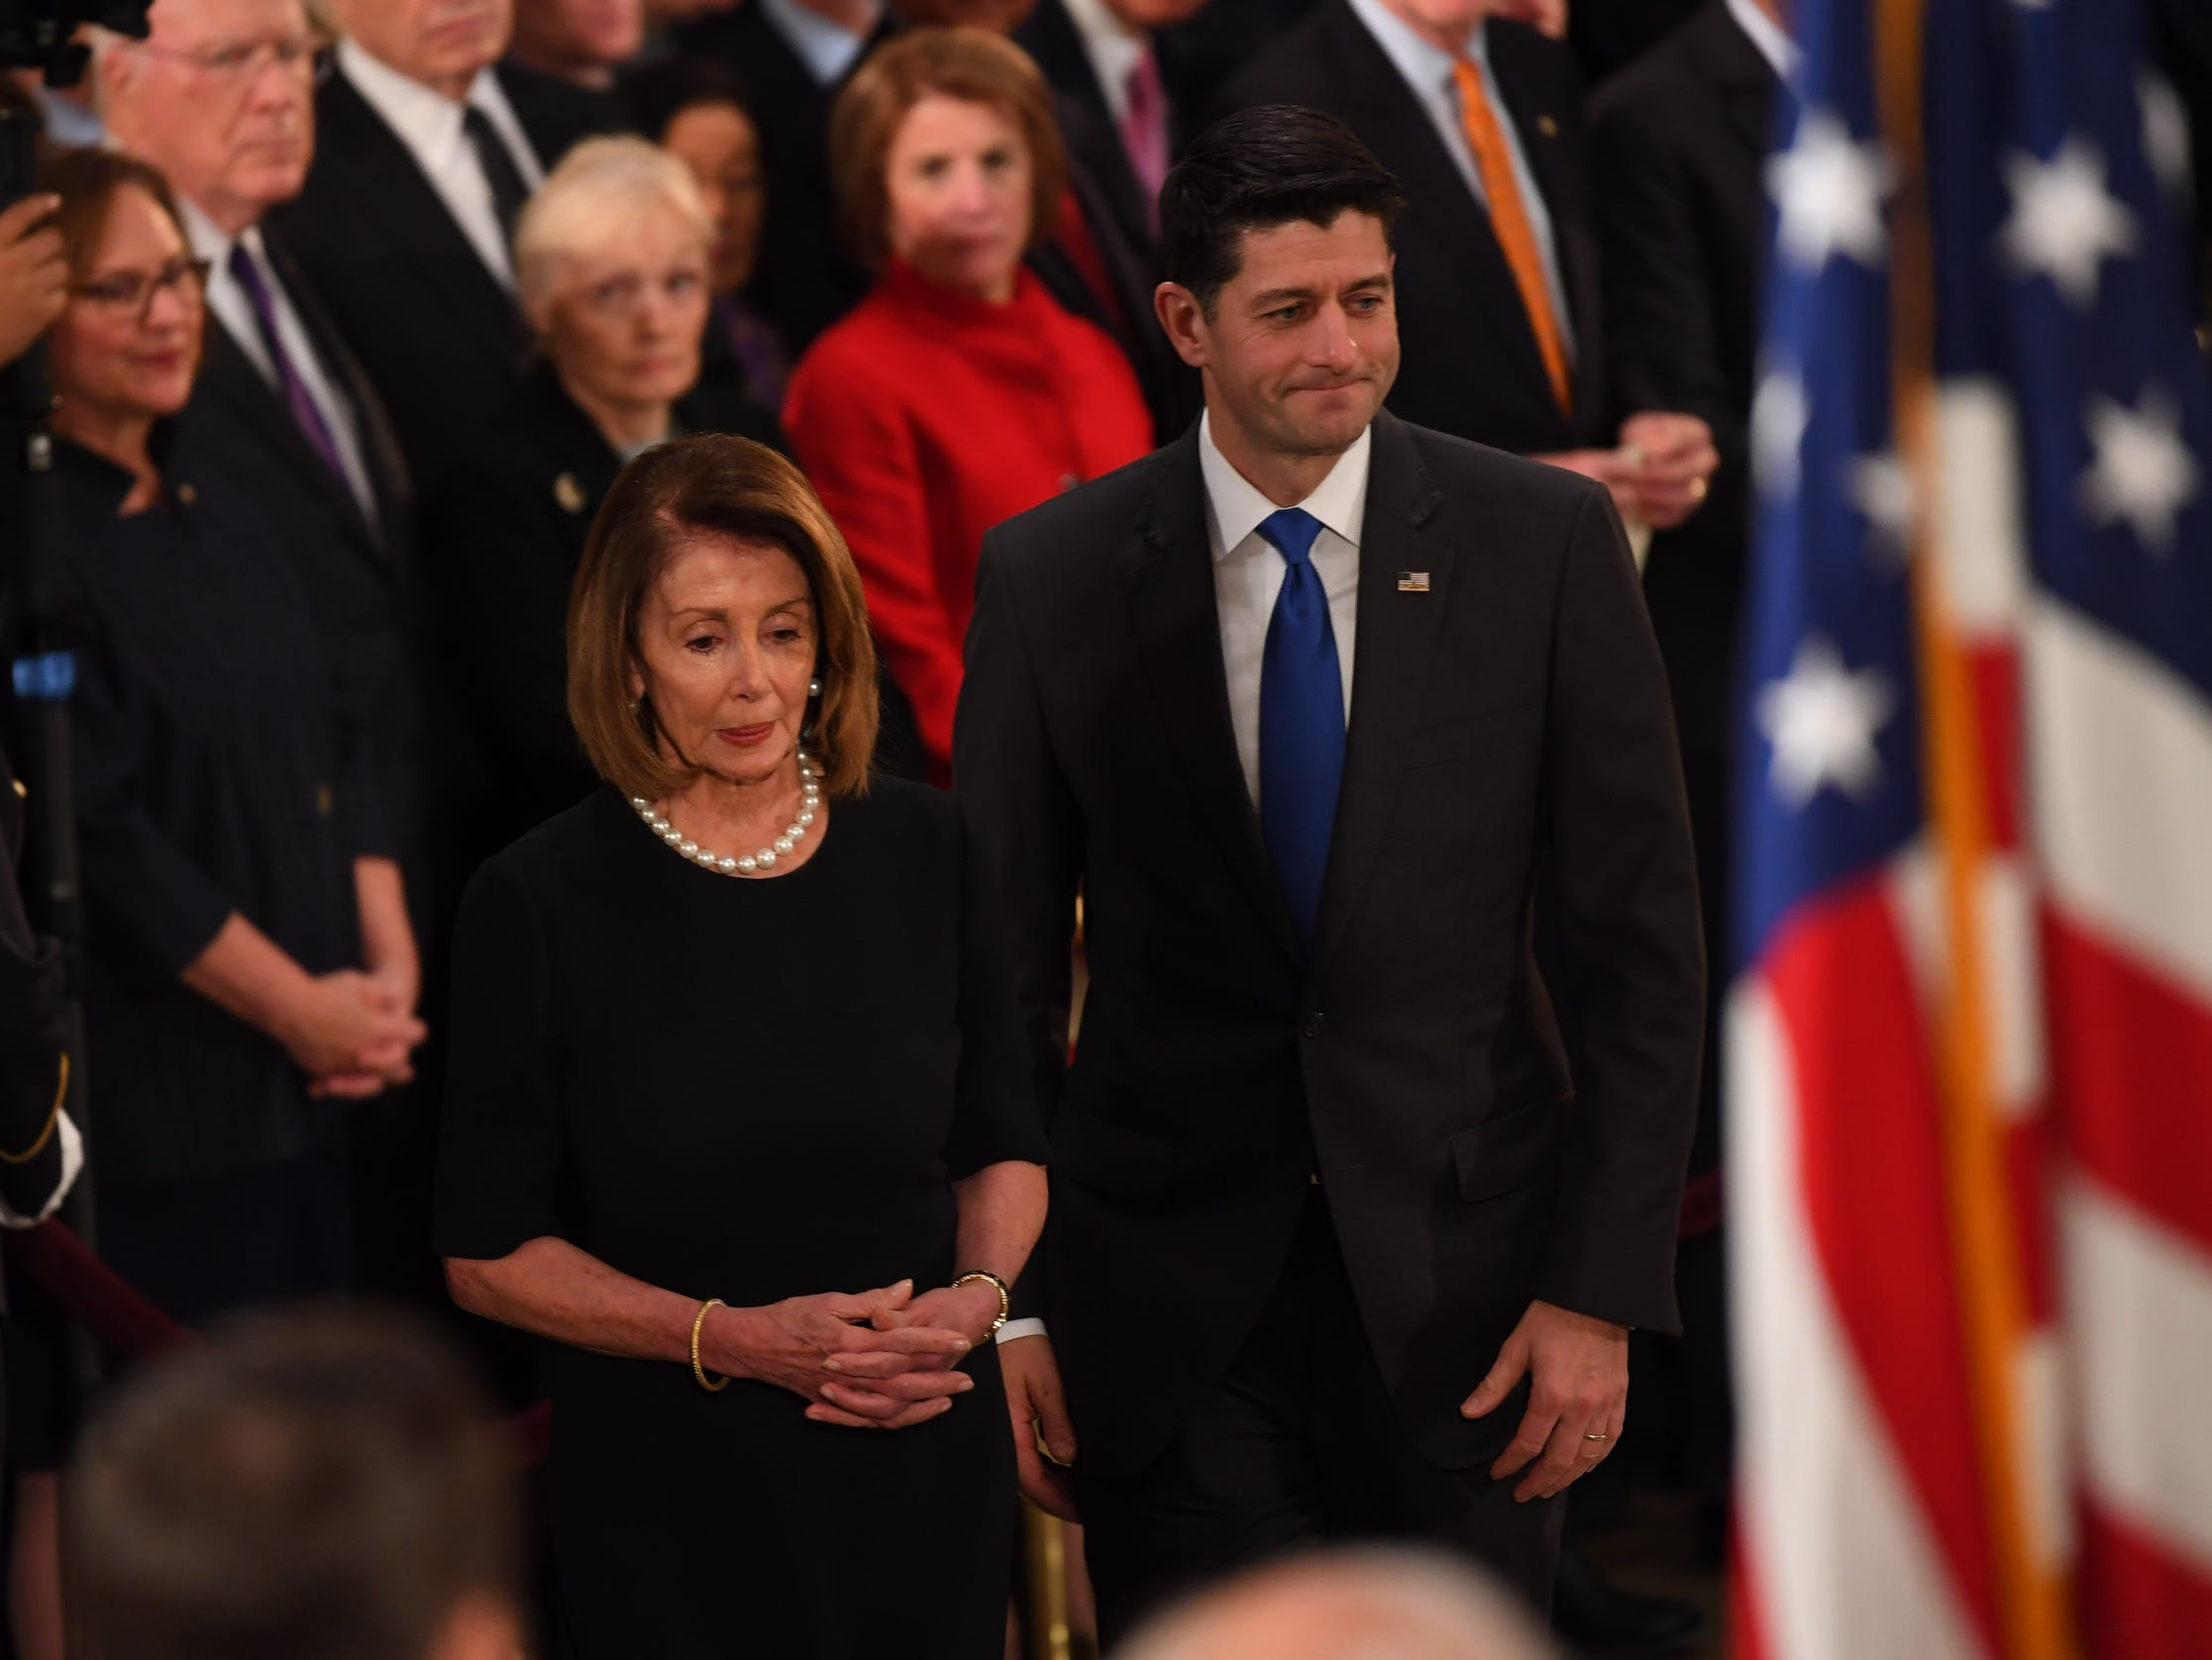 U.S. House Minority Leader Rep. Nancy Pelosi (D-CA) and Speaker of the House Rep. Paul Ryan (R-WI) pay their respects to former President George H.W. Bush, on Monday. The late president will lie in state until 7 a.m. Wednesday, Dec. 5, 2018.